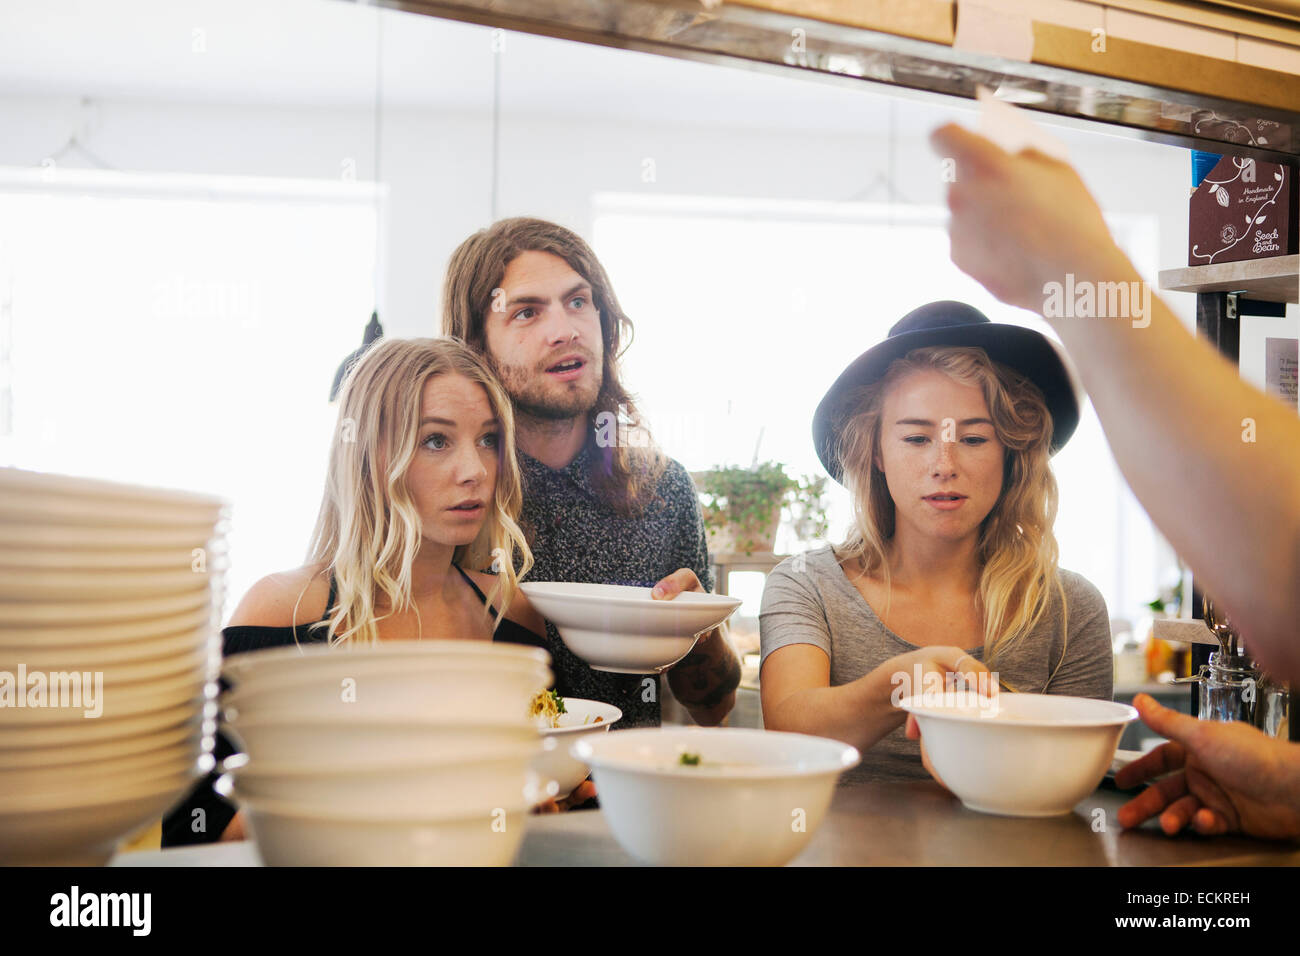 Friends taking food from counter at restaurant - Stock Image